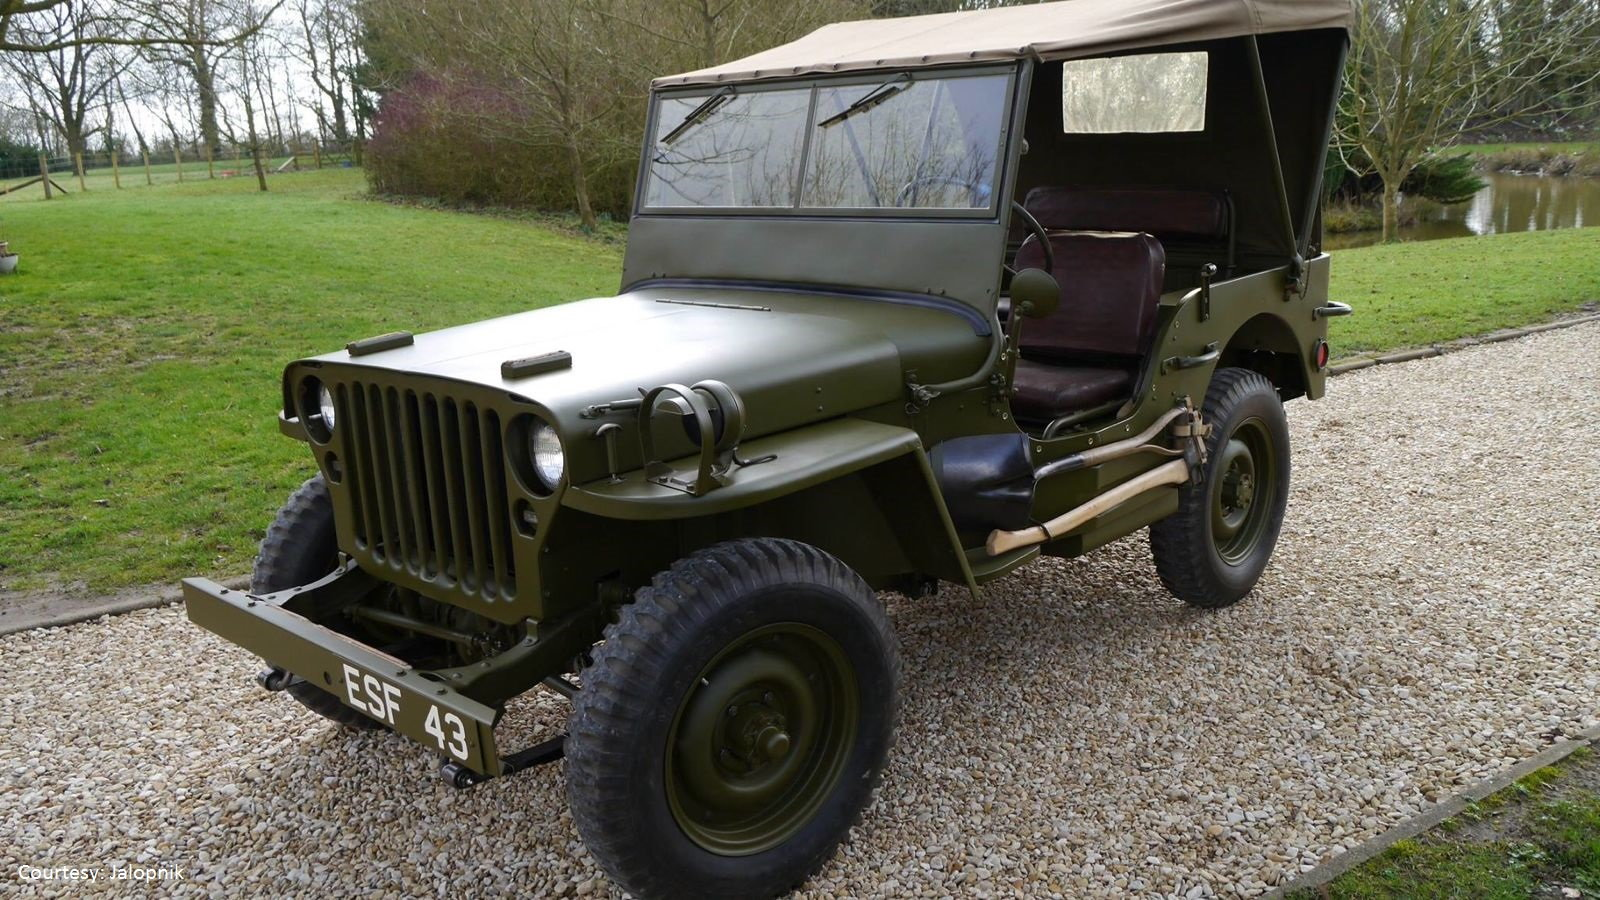 Jeep played a major role in WWII